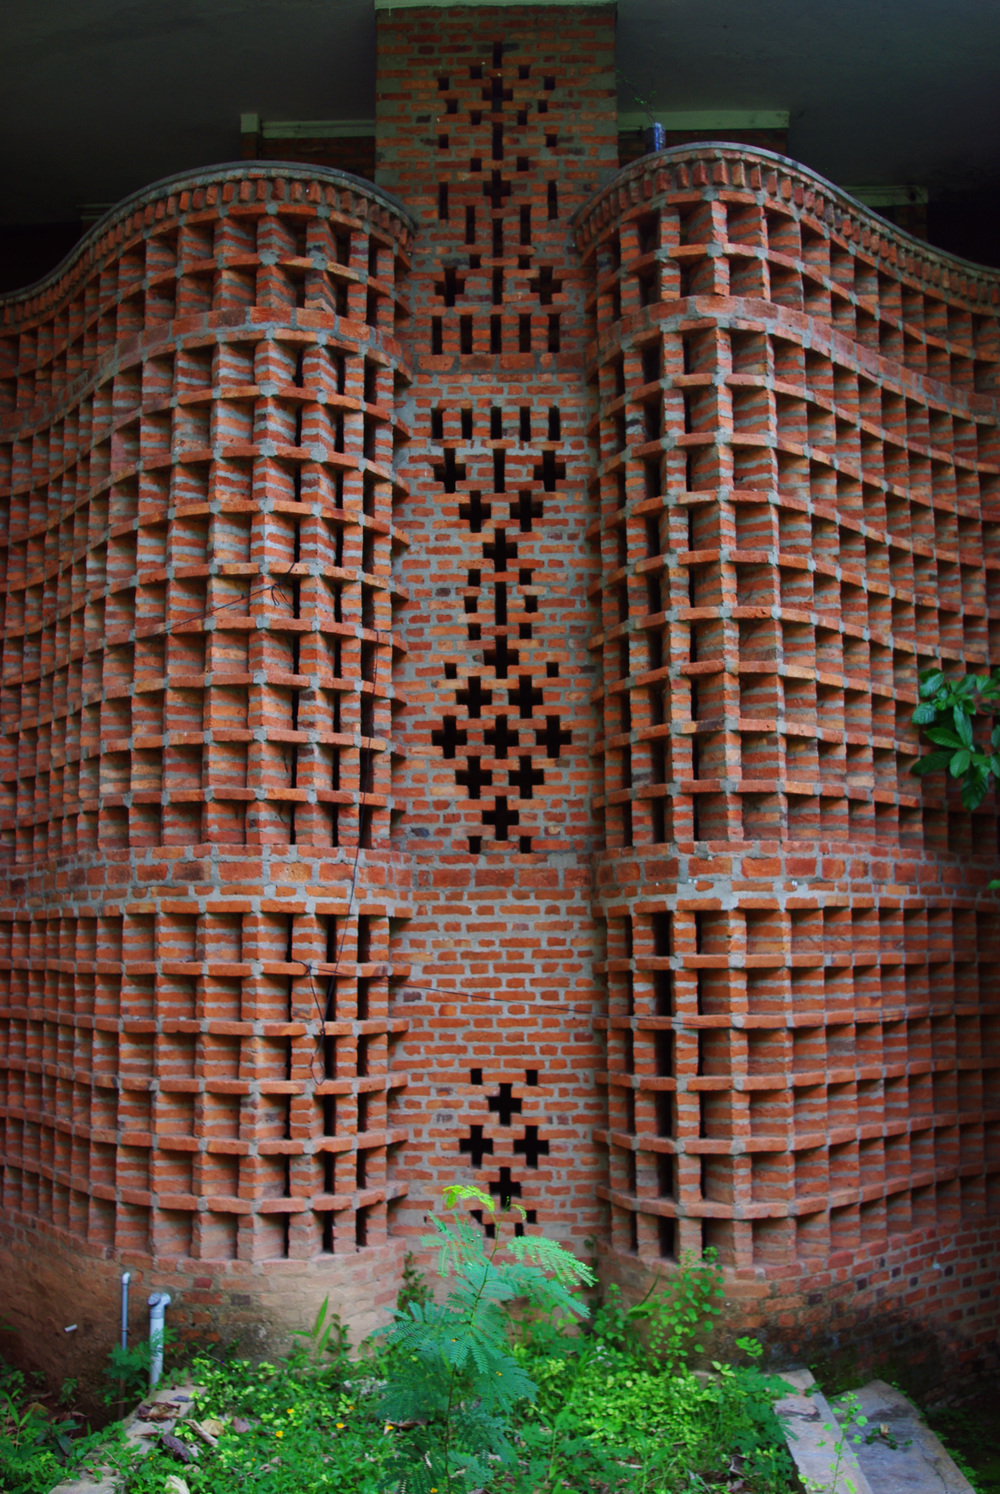 Women's Dormitory at the Centre for Development Studies, located in Ulloor, Trivandrum, completed in 1971 This building features some of Baker's most vitruosic brick work.  Two curved jali  walls fan outward from a central spine, creating a breezy, shaded shared corridor space.  The monolithic walls rise up two and a half stories, and end in a handrail on the third storey balcony.  Private rooms are located at the back of the building, shielded from the public walkway.